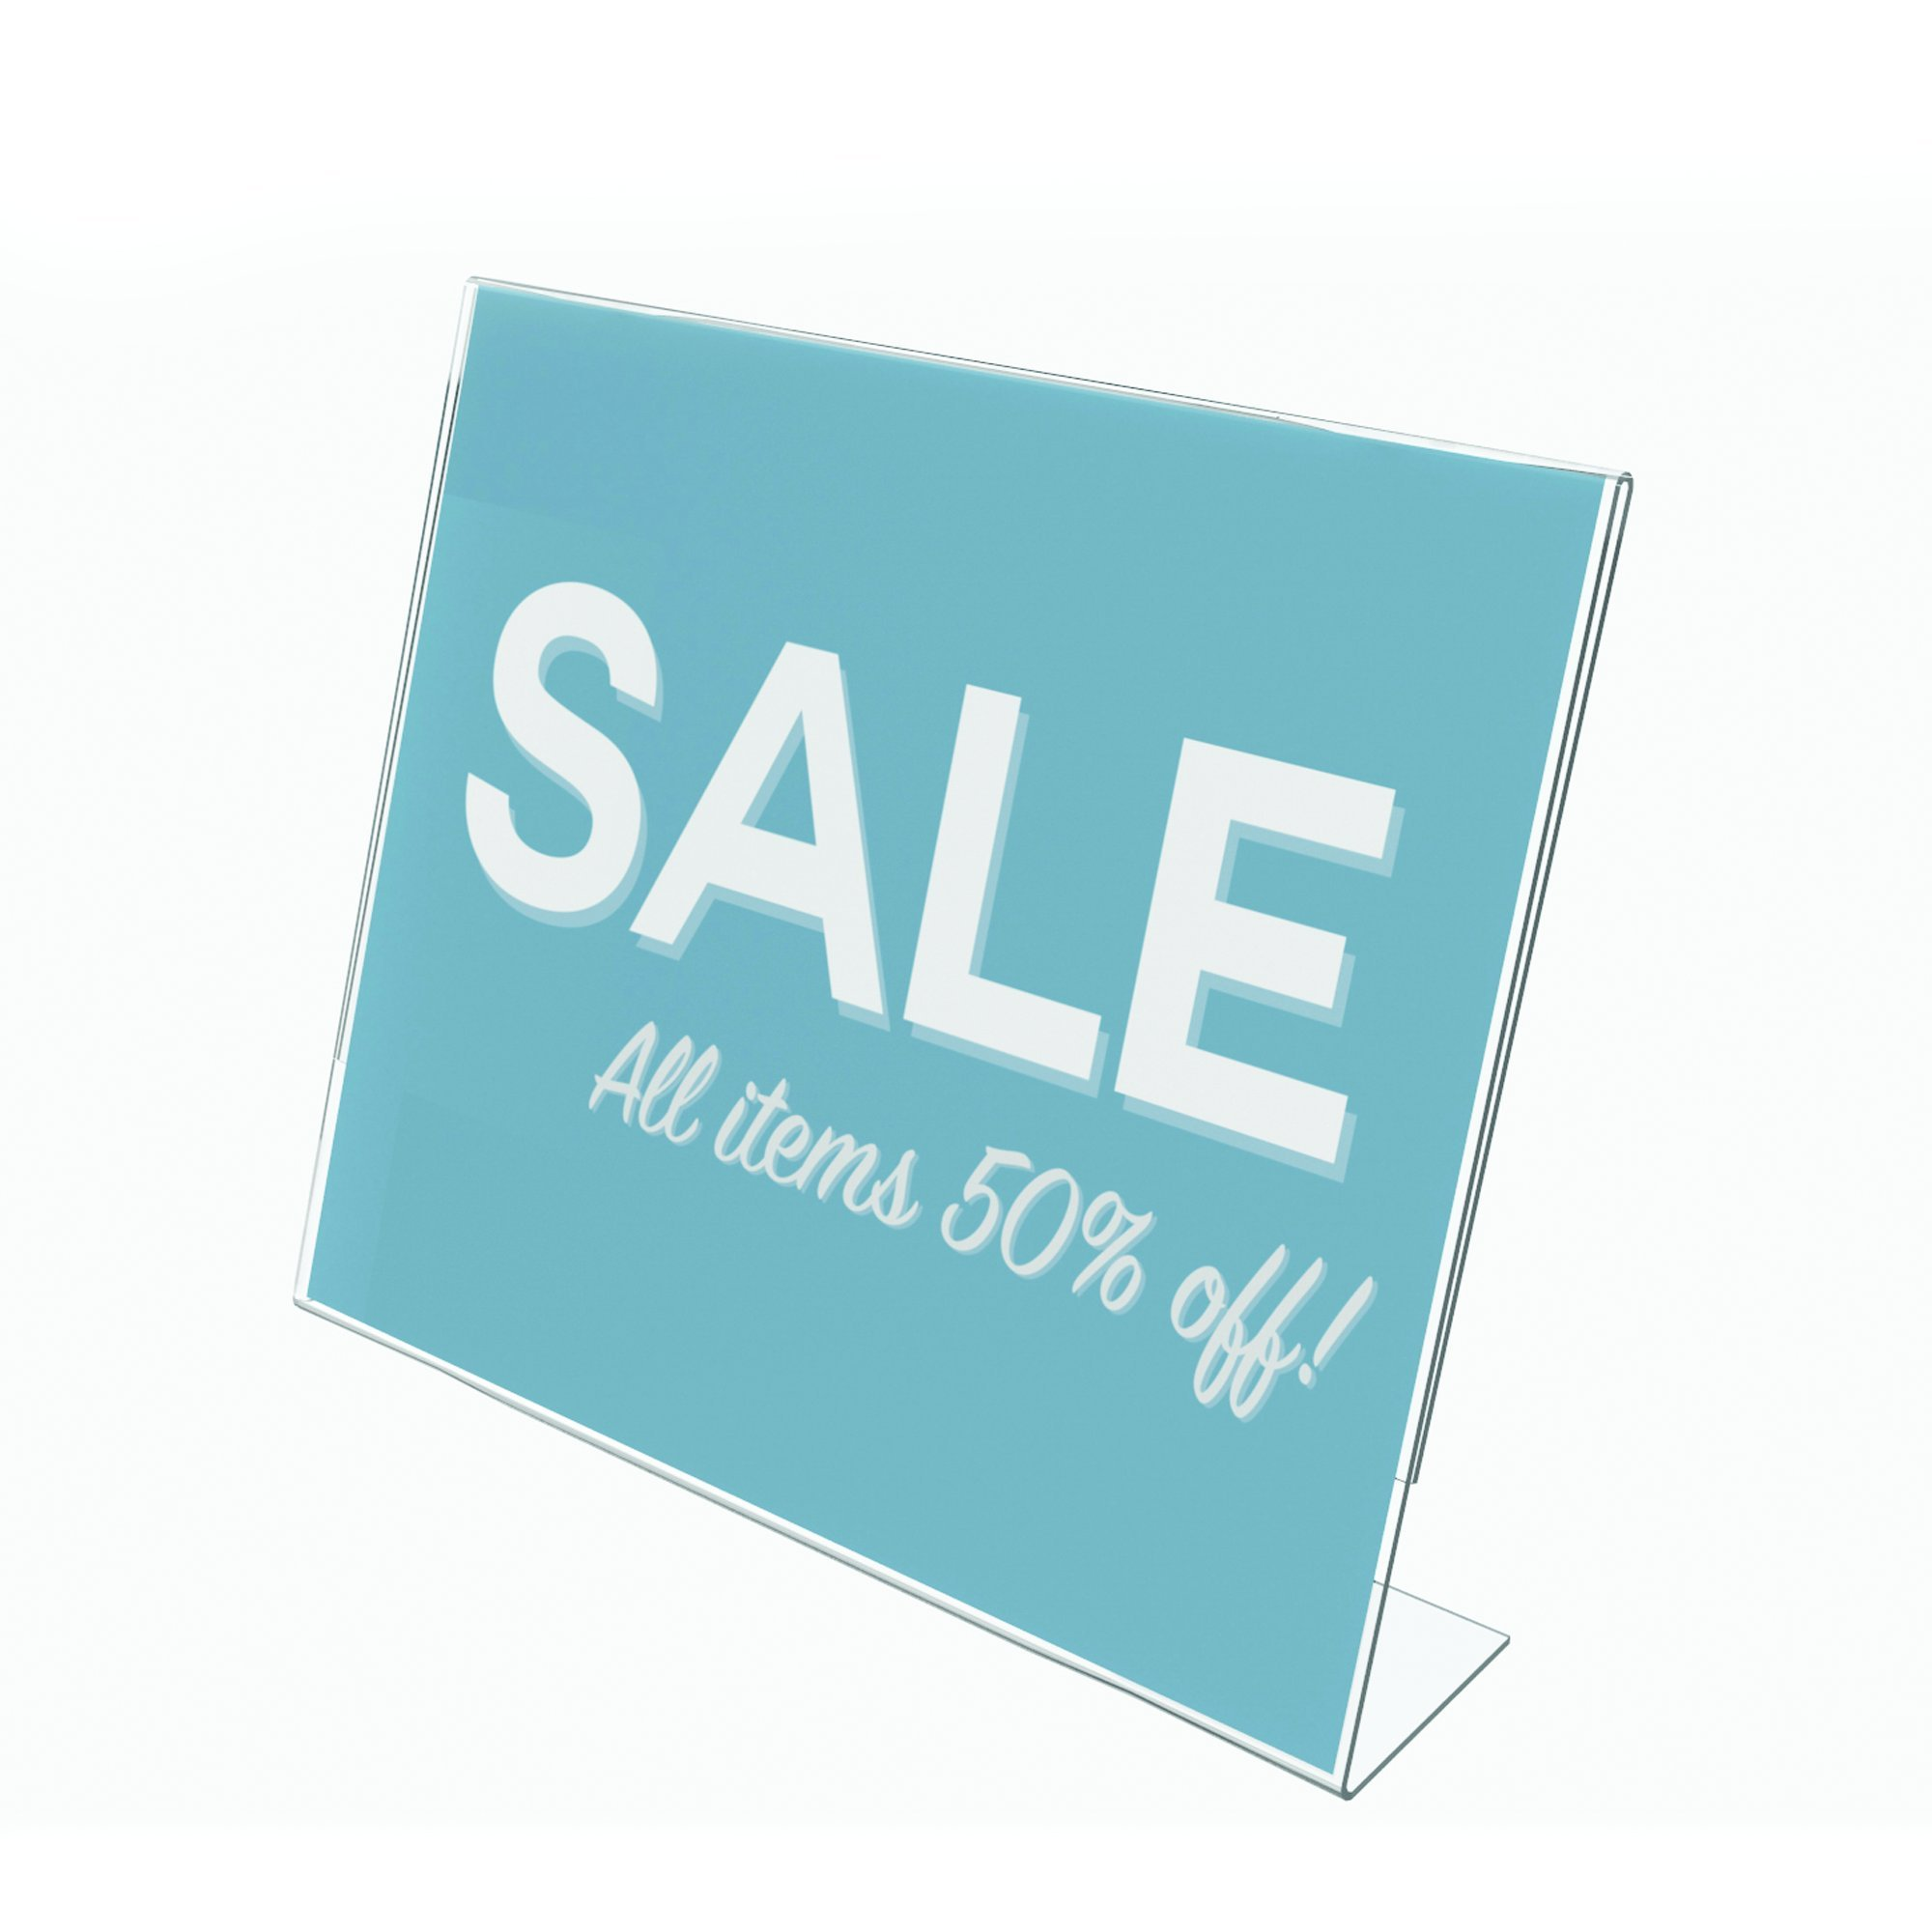 """Deflecto Classic Image Slanted Sign Holder, Tabletop and Desk, Single-Sided, Horizontal, 11"""" x 8.5"""", Clear (66701)"""